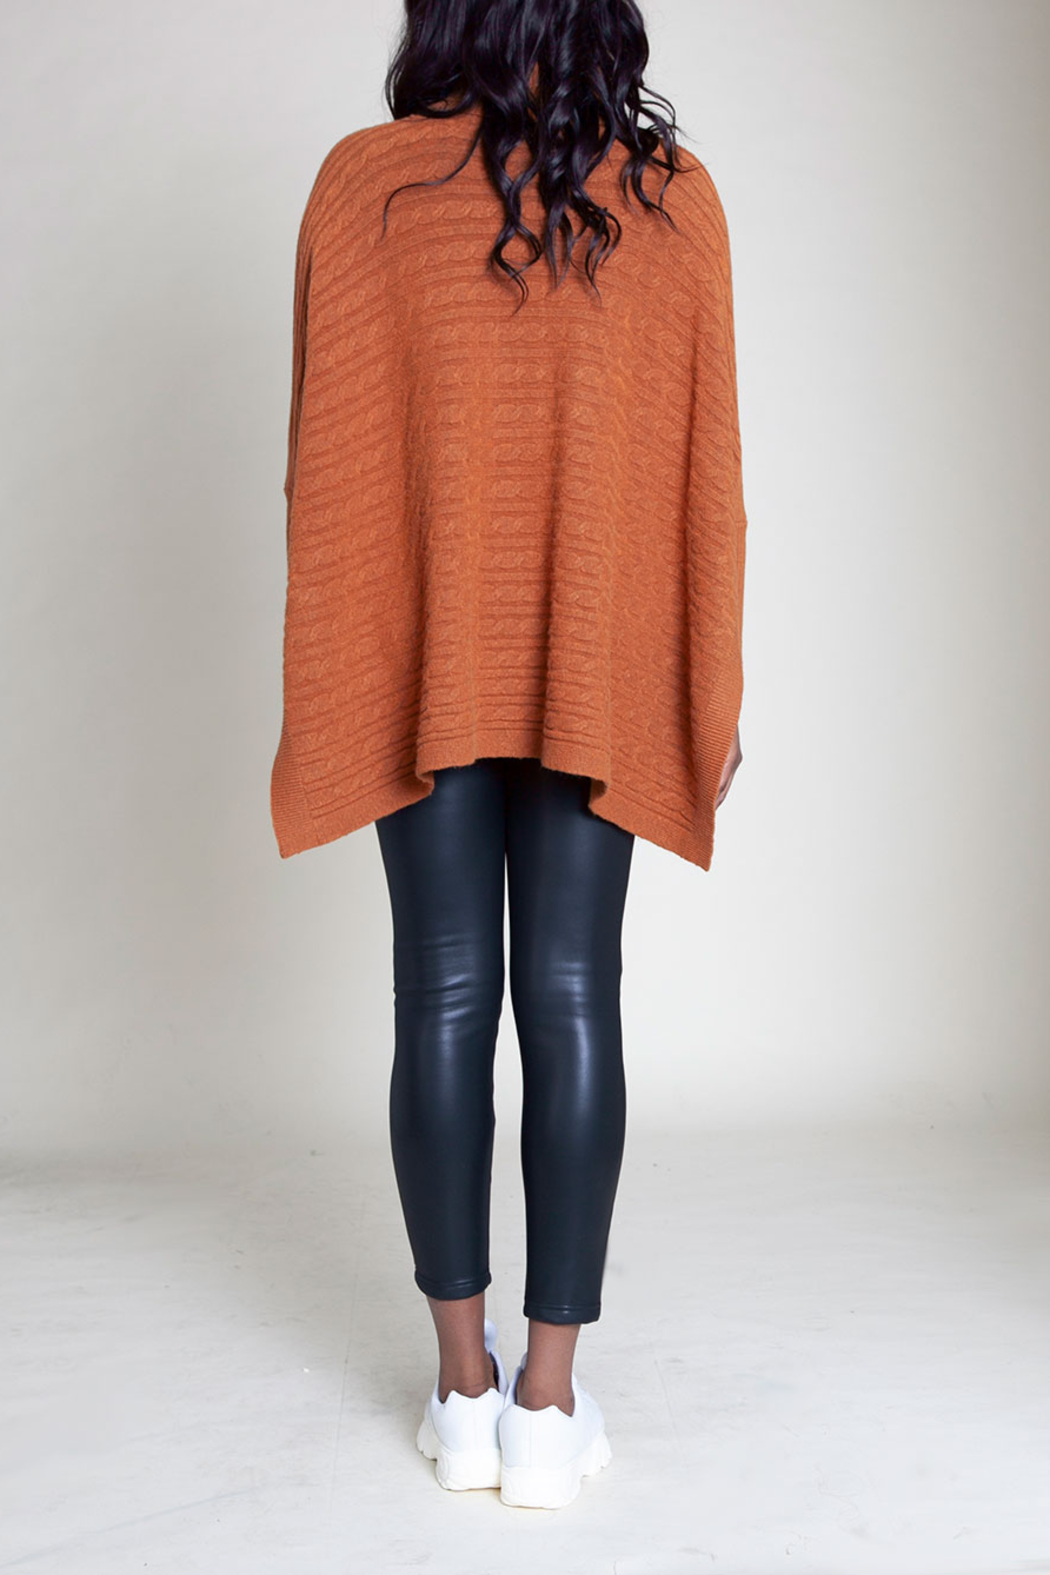 Patrizia Luca Turleneck cable knit poncho - Front Full Image